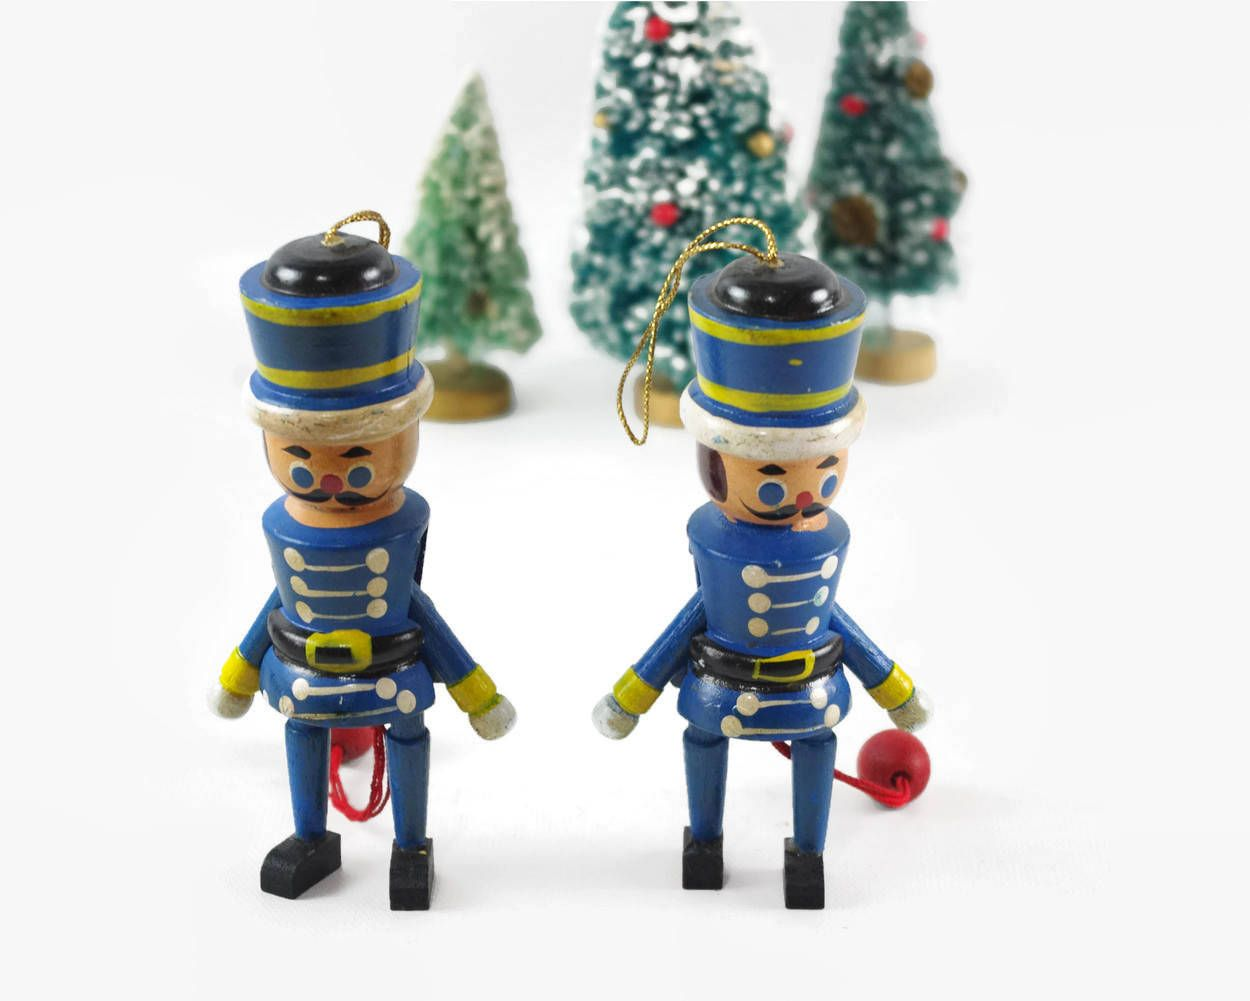 vintage christmas ornaments wooden toy soldier jumping jack toys cute christmas decorations by gizmoandhooha - Christmas Decorations Wooden Soldiers